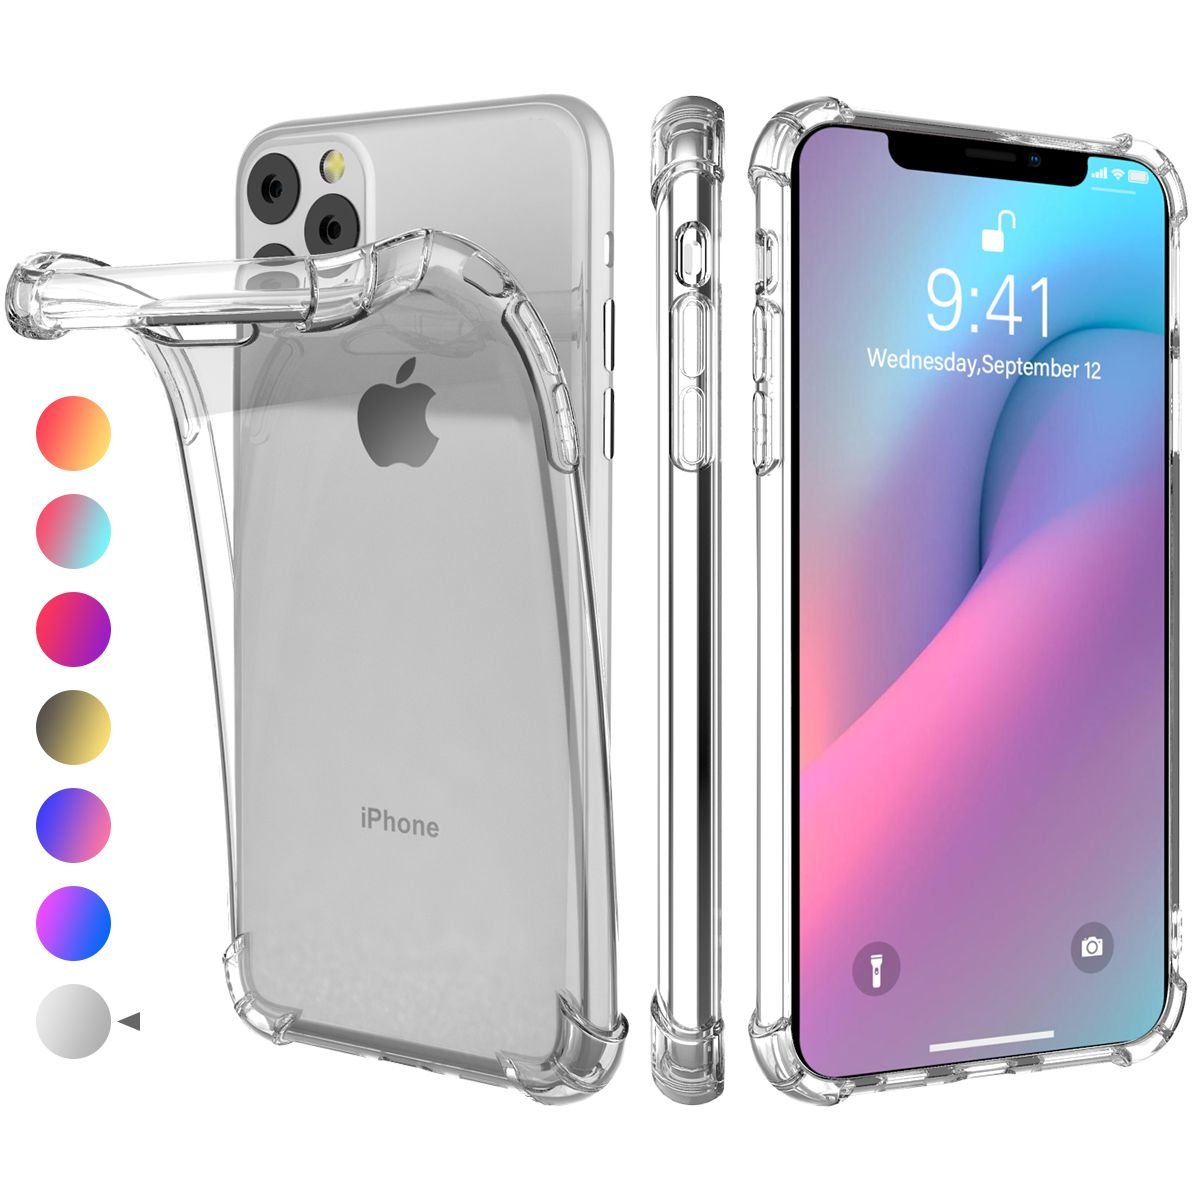 Shockproof And Anti Fall Iphone 11 6 1 Inch Mobile Phone Case Tpu Gradient Color Mobile Phone For Iphone 11 6 1 Inches Transparent Color Walmart Com Iphone Iphone 11 Mobile Phone Cases